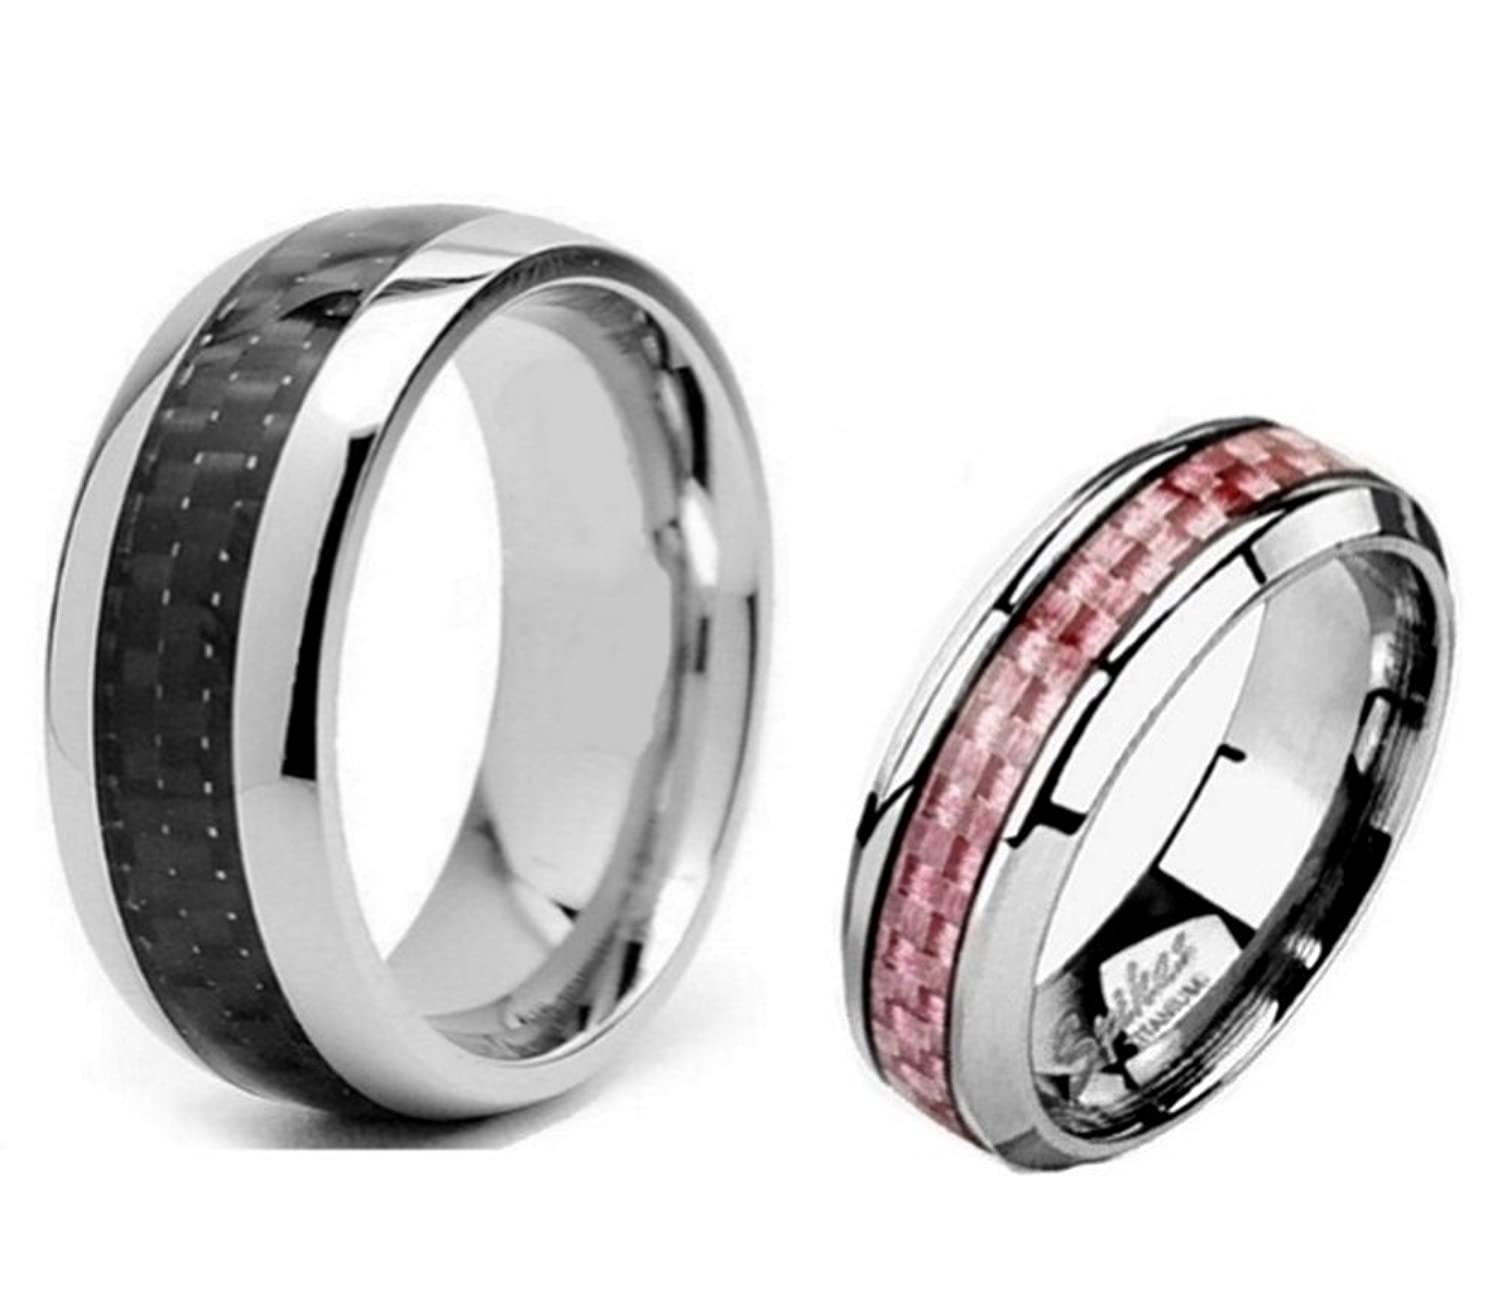 2 pc his hers titanium carbon fiber wedding band ring set sizes 5 thru 9 pink 9 thru 13 black amazoncom - Carbon Fiber Wedding Rings